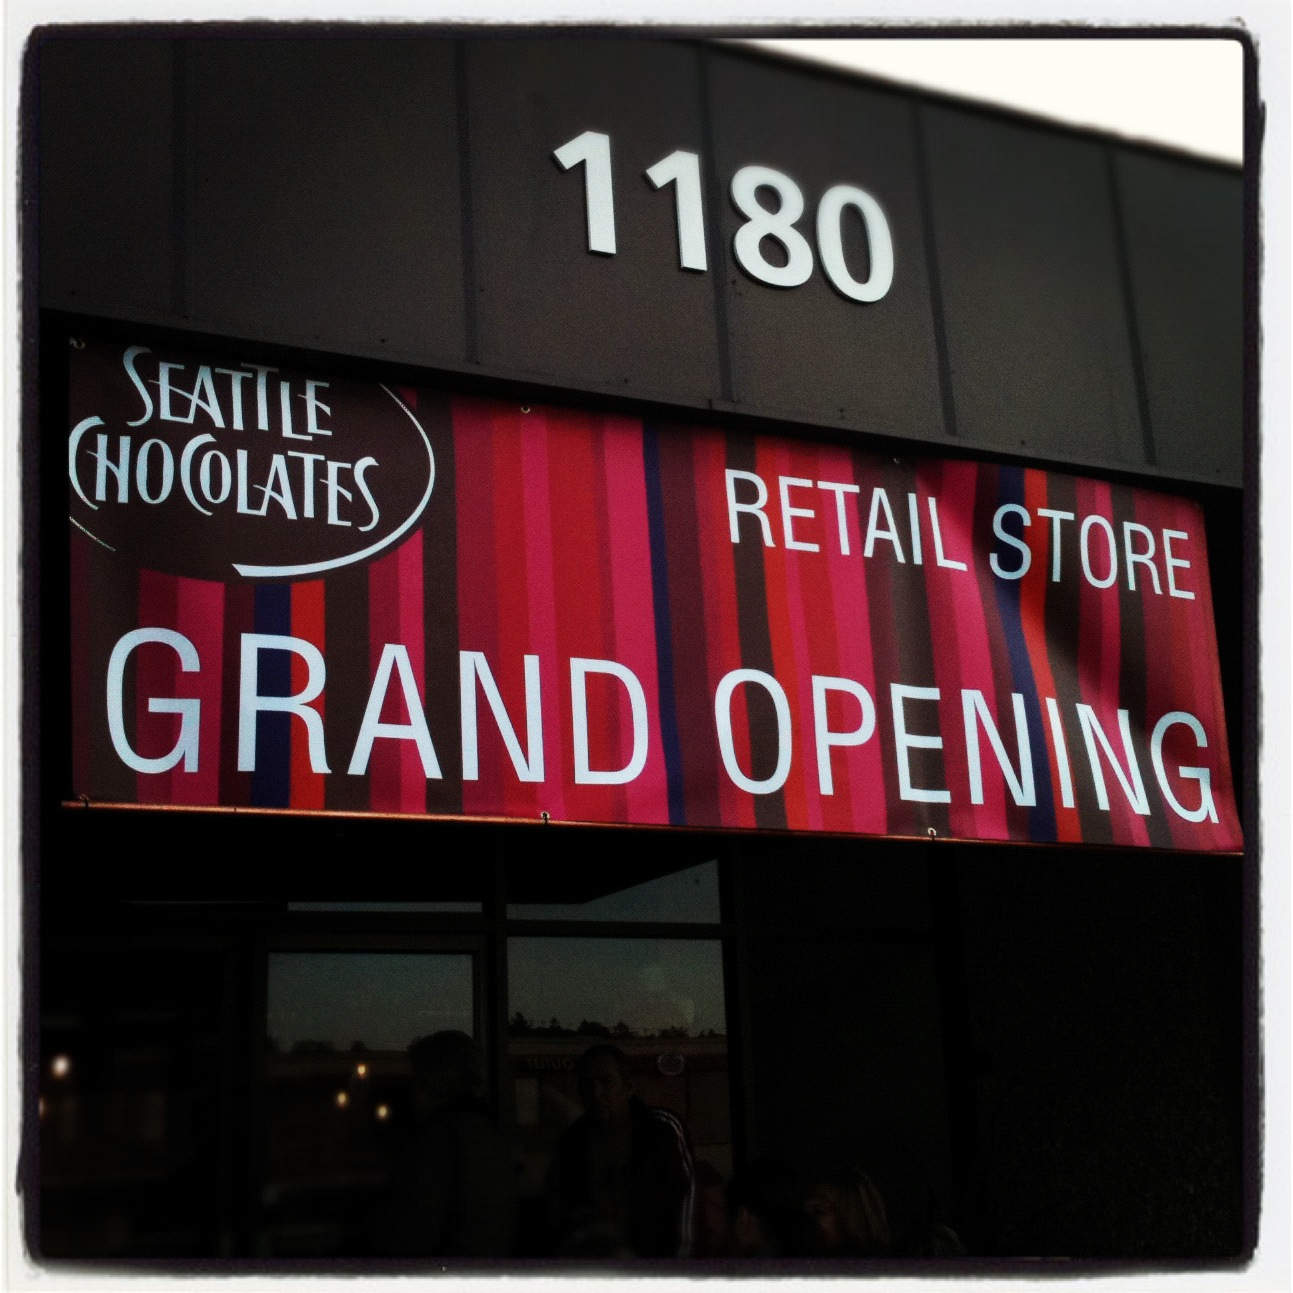 Seattle Chocolates Grand Opening Party! – Social Media & Events